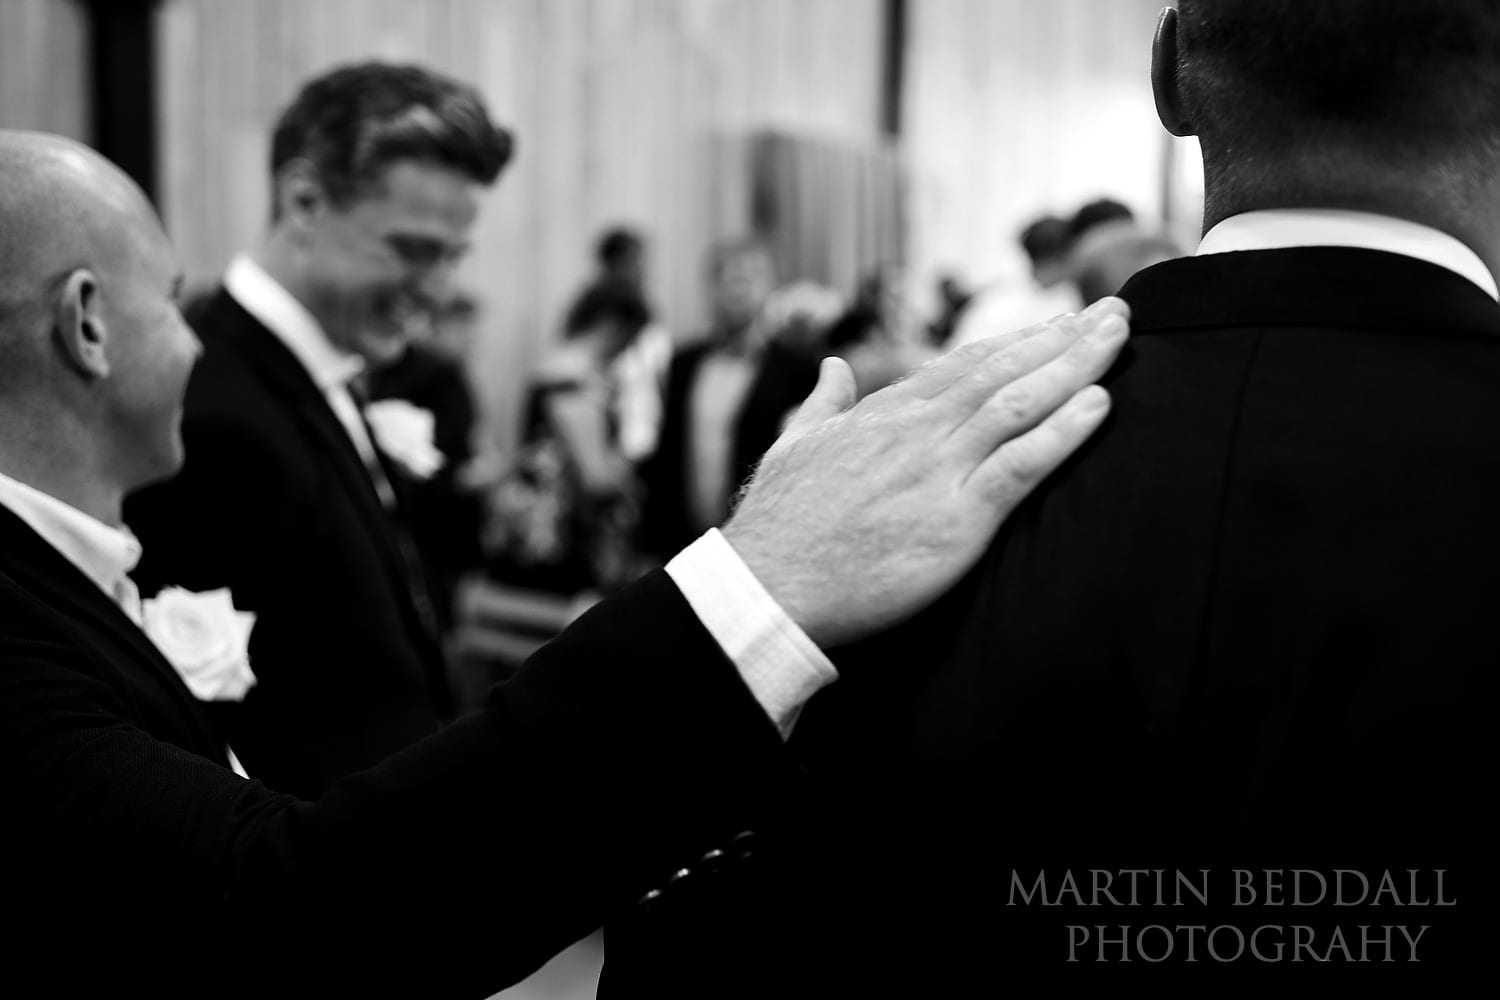 Encouragement for the groom ahead of the wedding ceremony